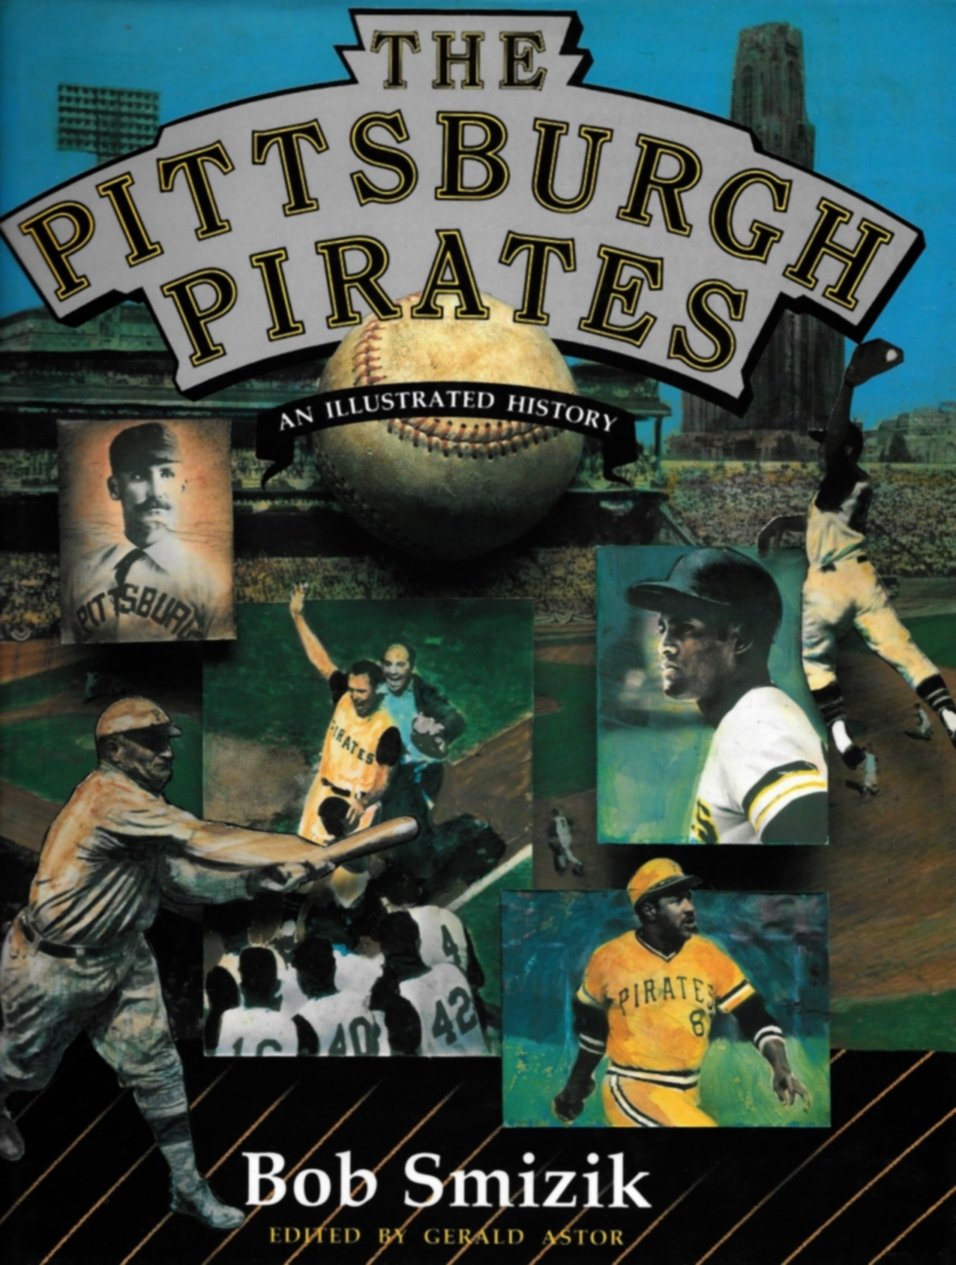 The Pittsburgh Pirates: An Illustrated History